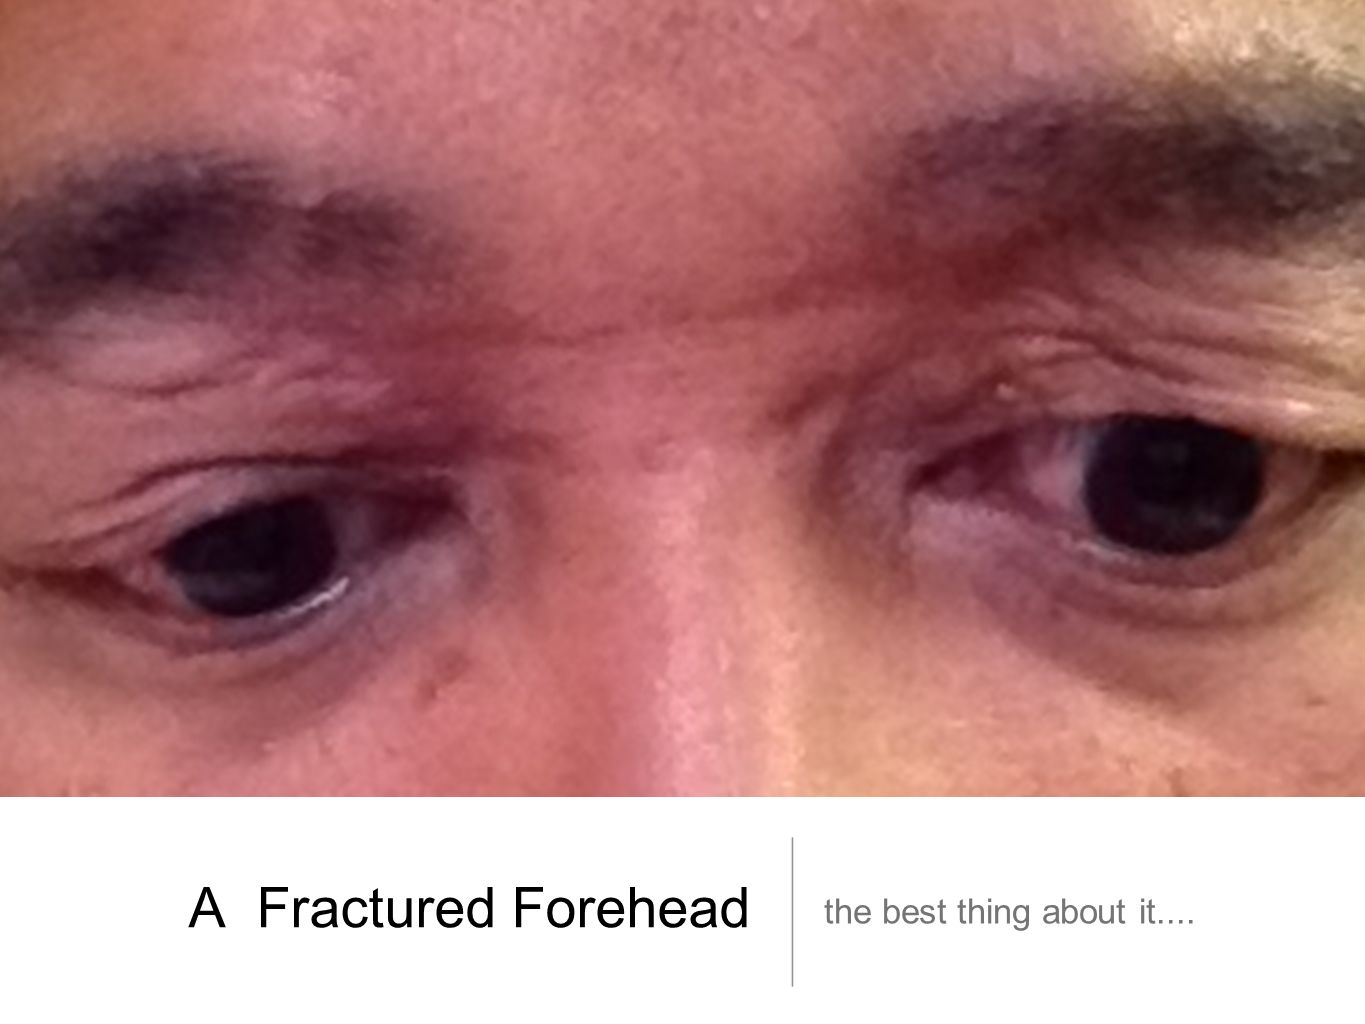 A Fractured Forehead the best thing about it....